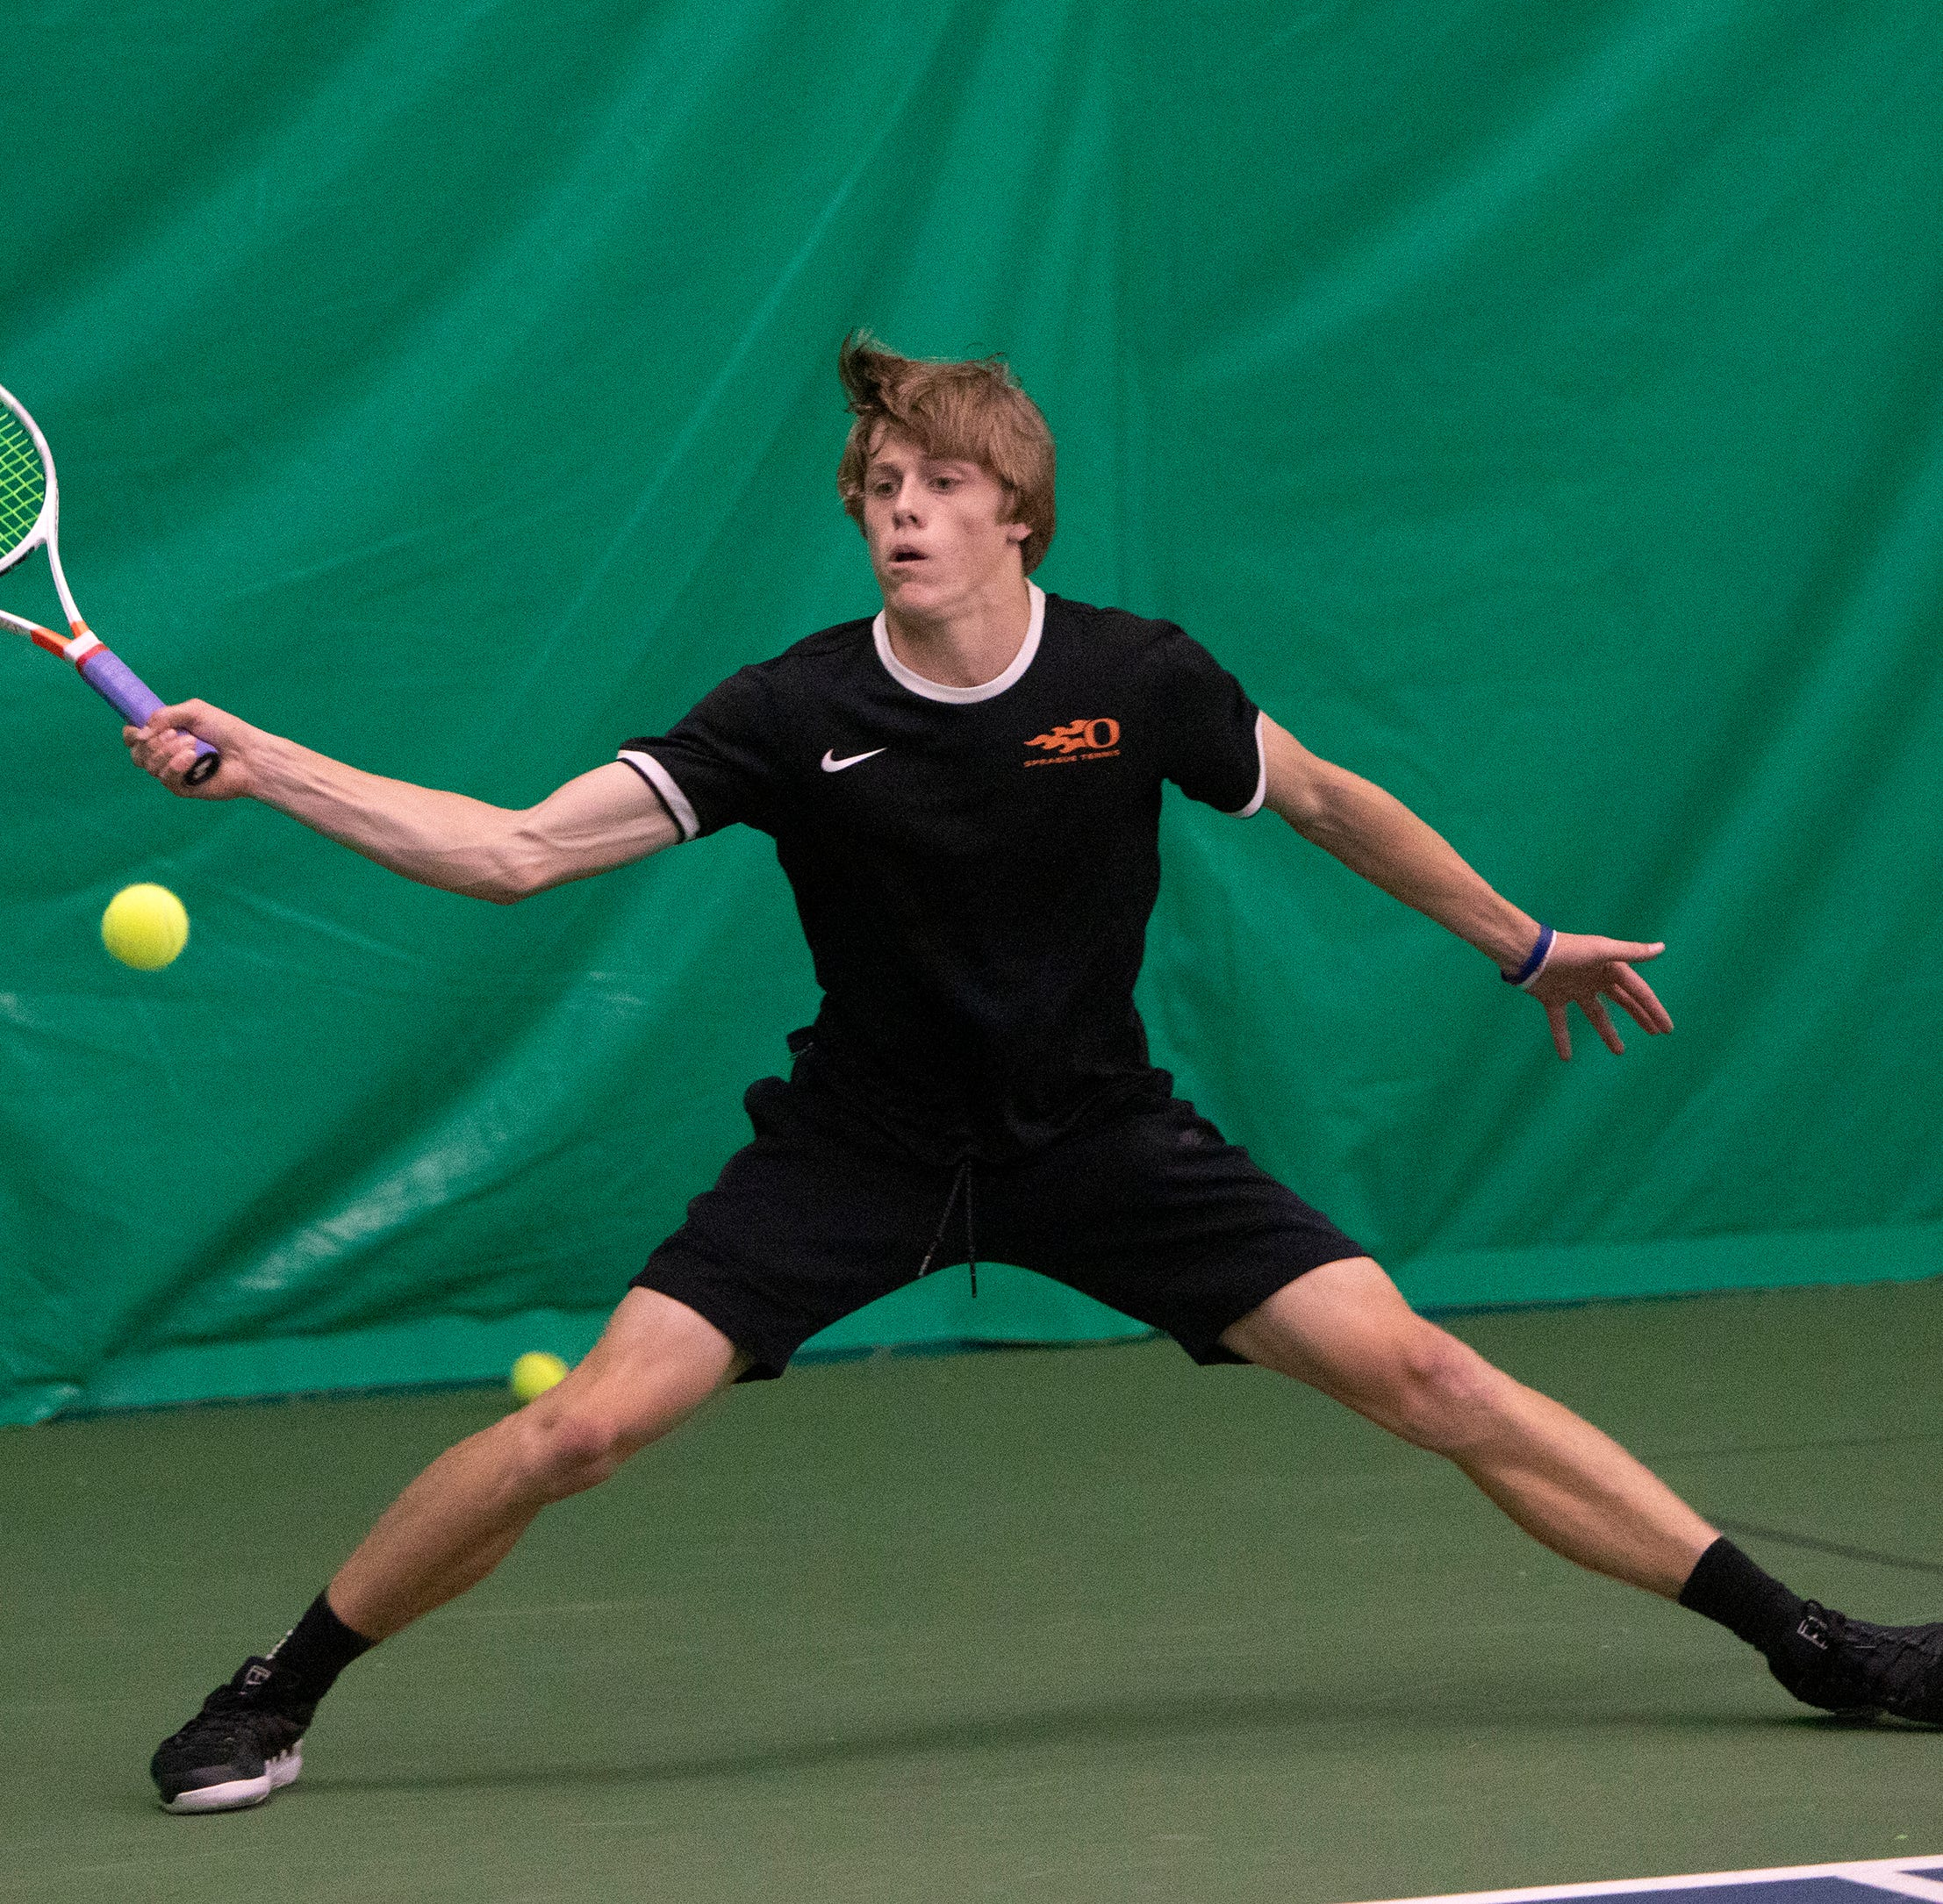 OSAA tennis: Sprague's Judson Blair cruises into state quarterfinals